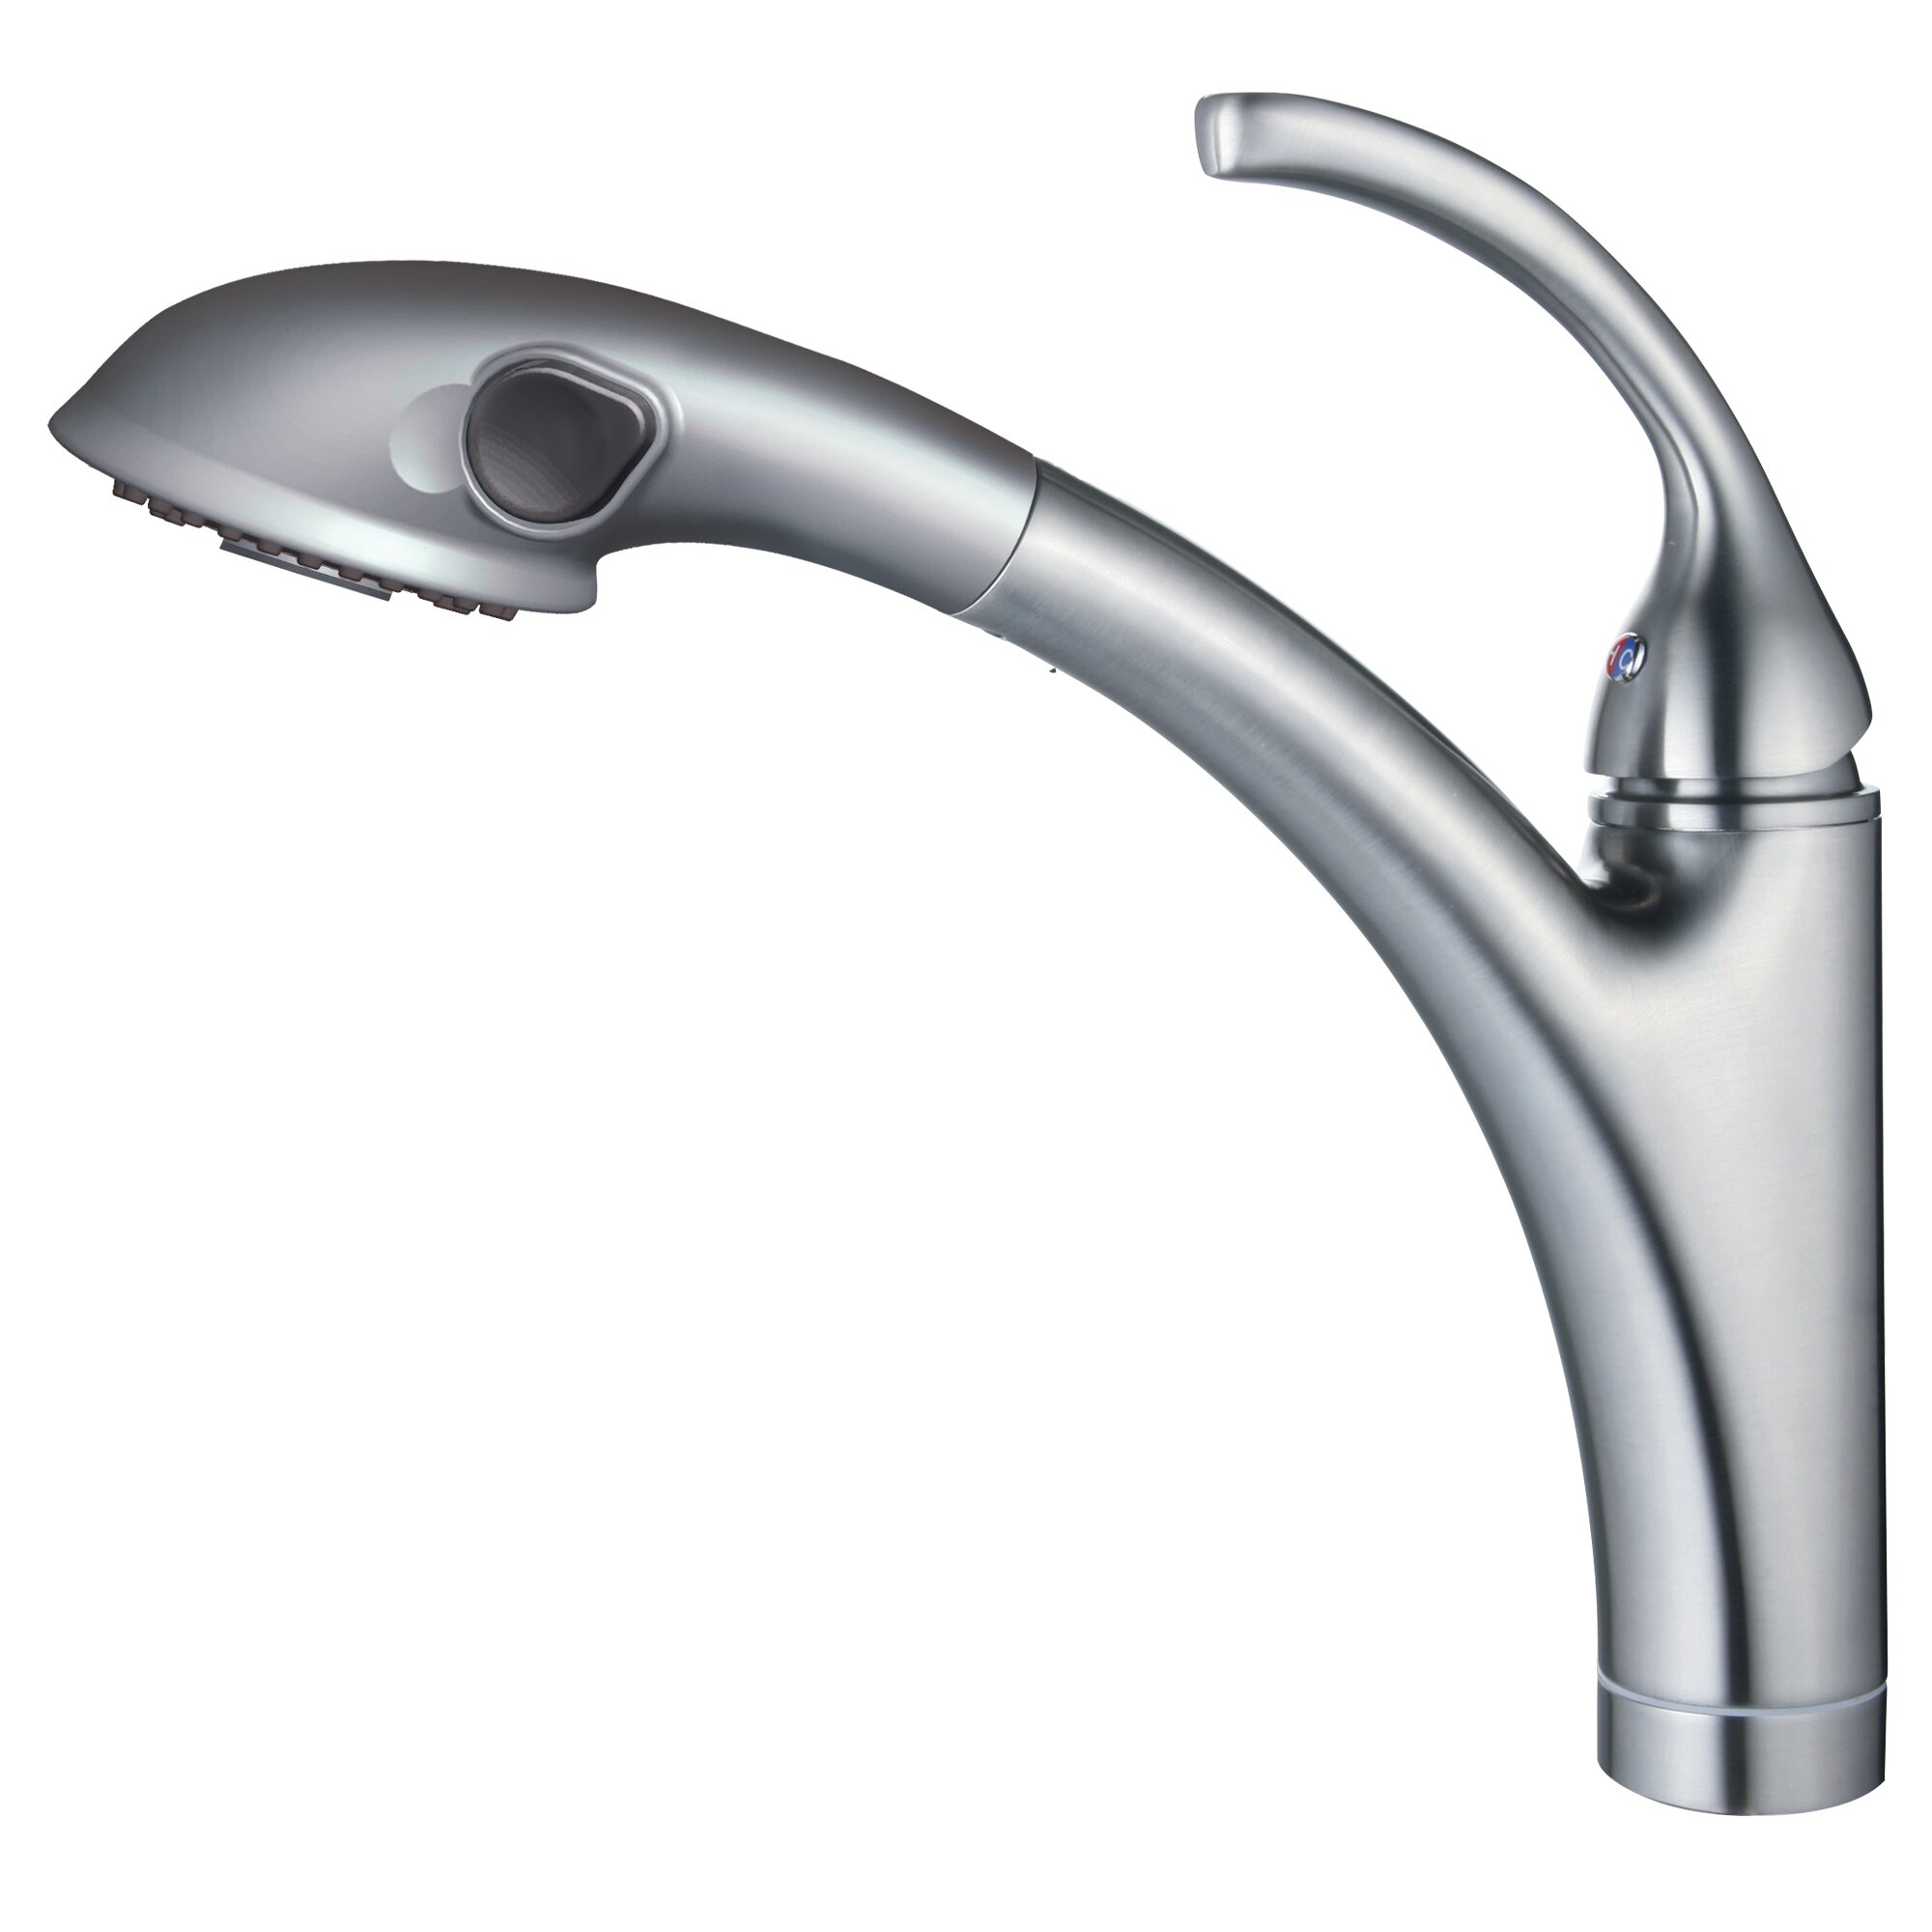 Yosemite Home Decor Single Handle Single Hole Kitchen Faucet With Pull Out Spout Sprayer